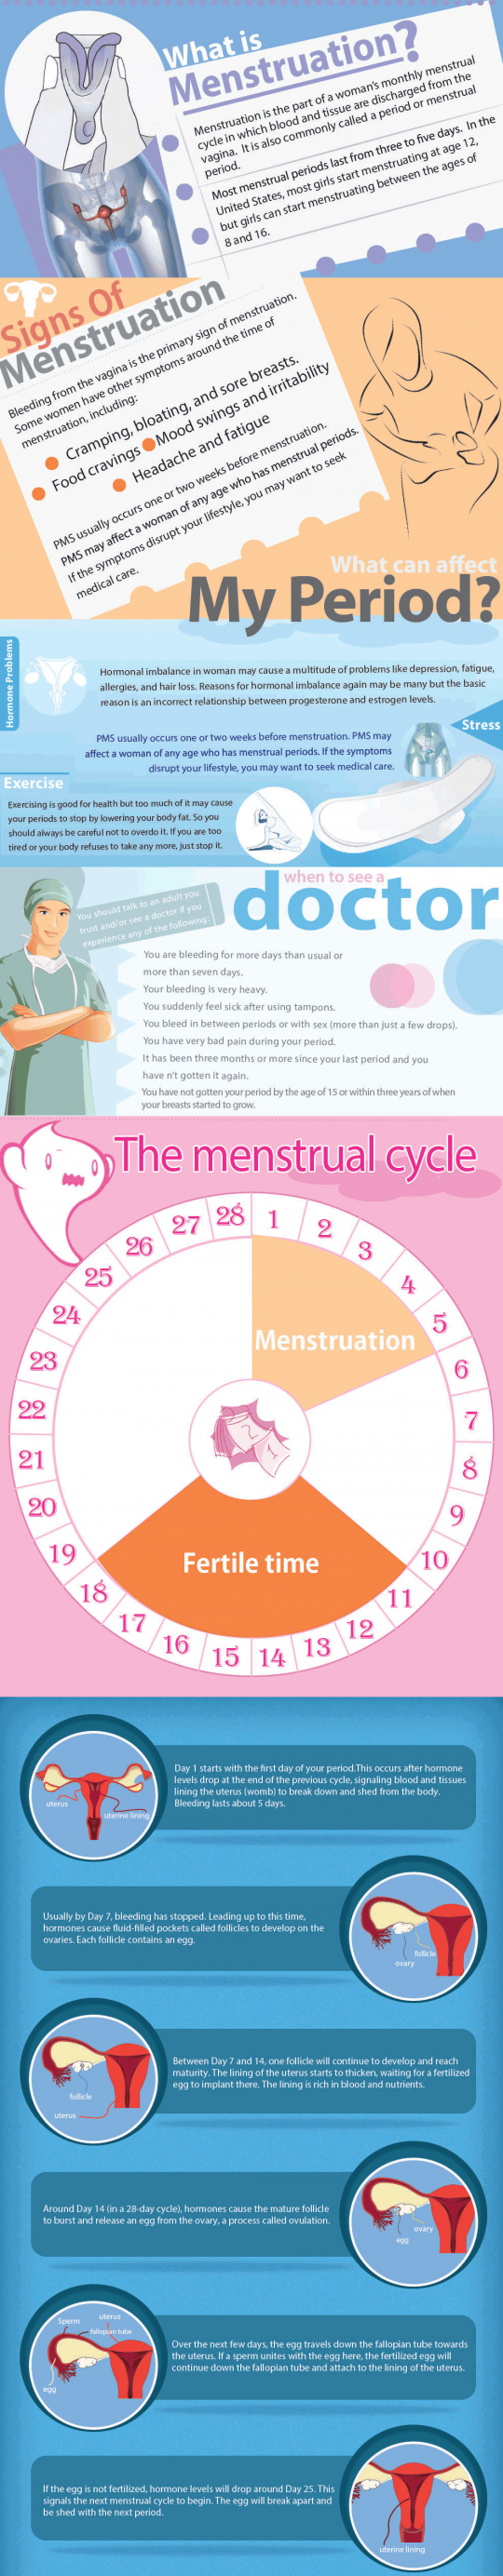 Menstrual Cycle Myths: 6 Ideas About Your Period That It's